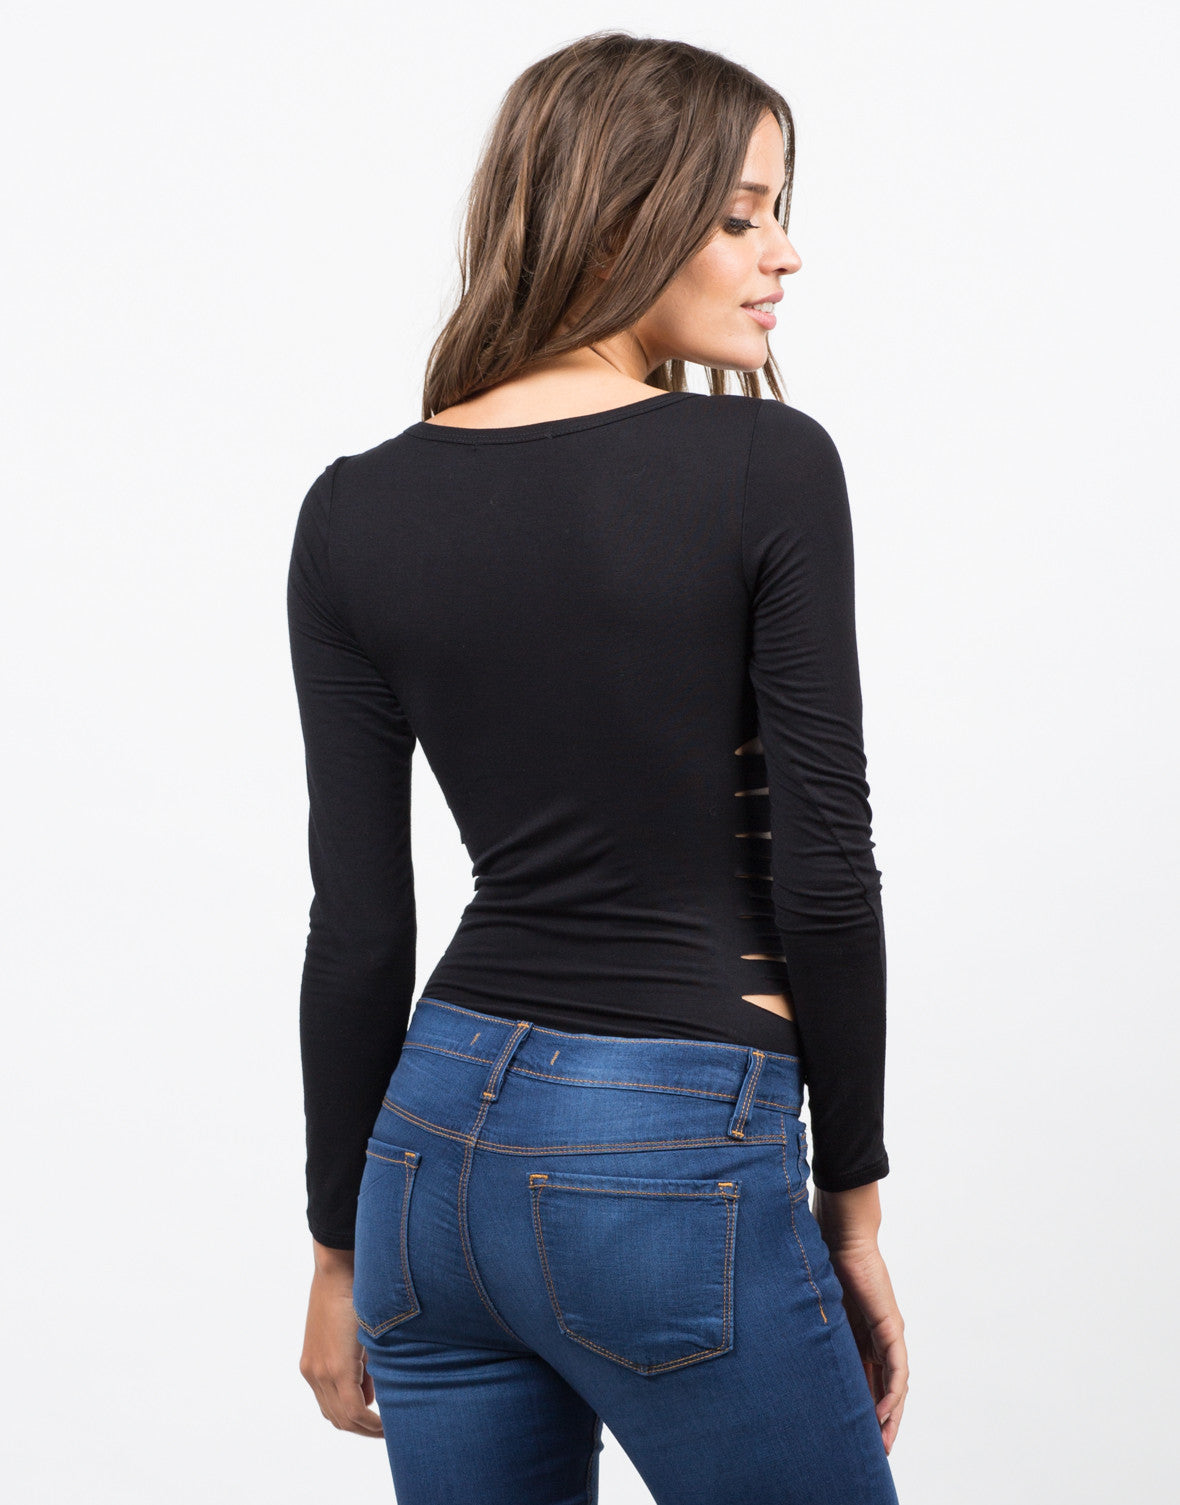 Back View of Cut Out Bodysuit